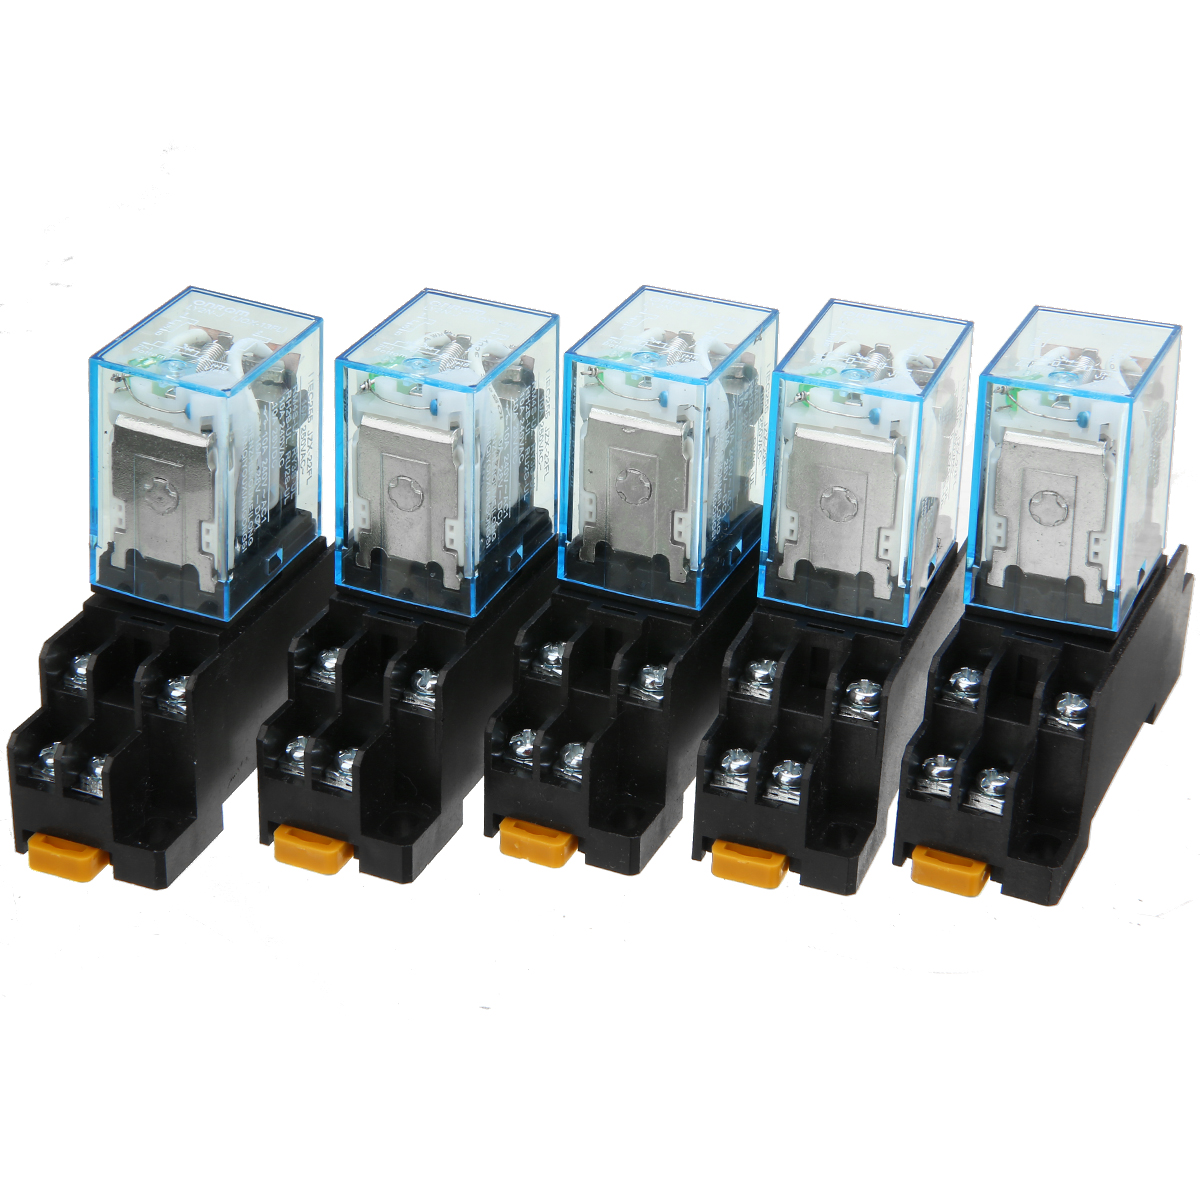 5 Set 12V DC Coil Power Relay LY2NJ DPDT 8Pin HH62P JQX-13F With Socket Base